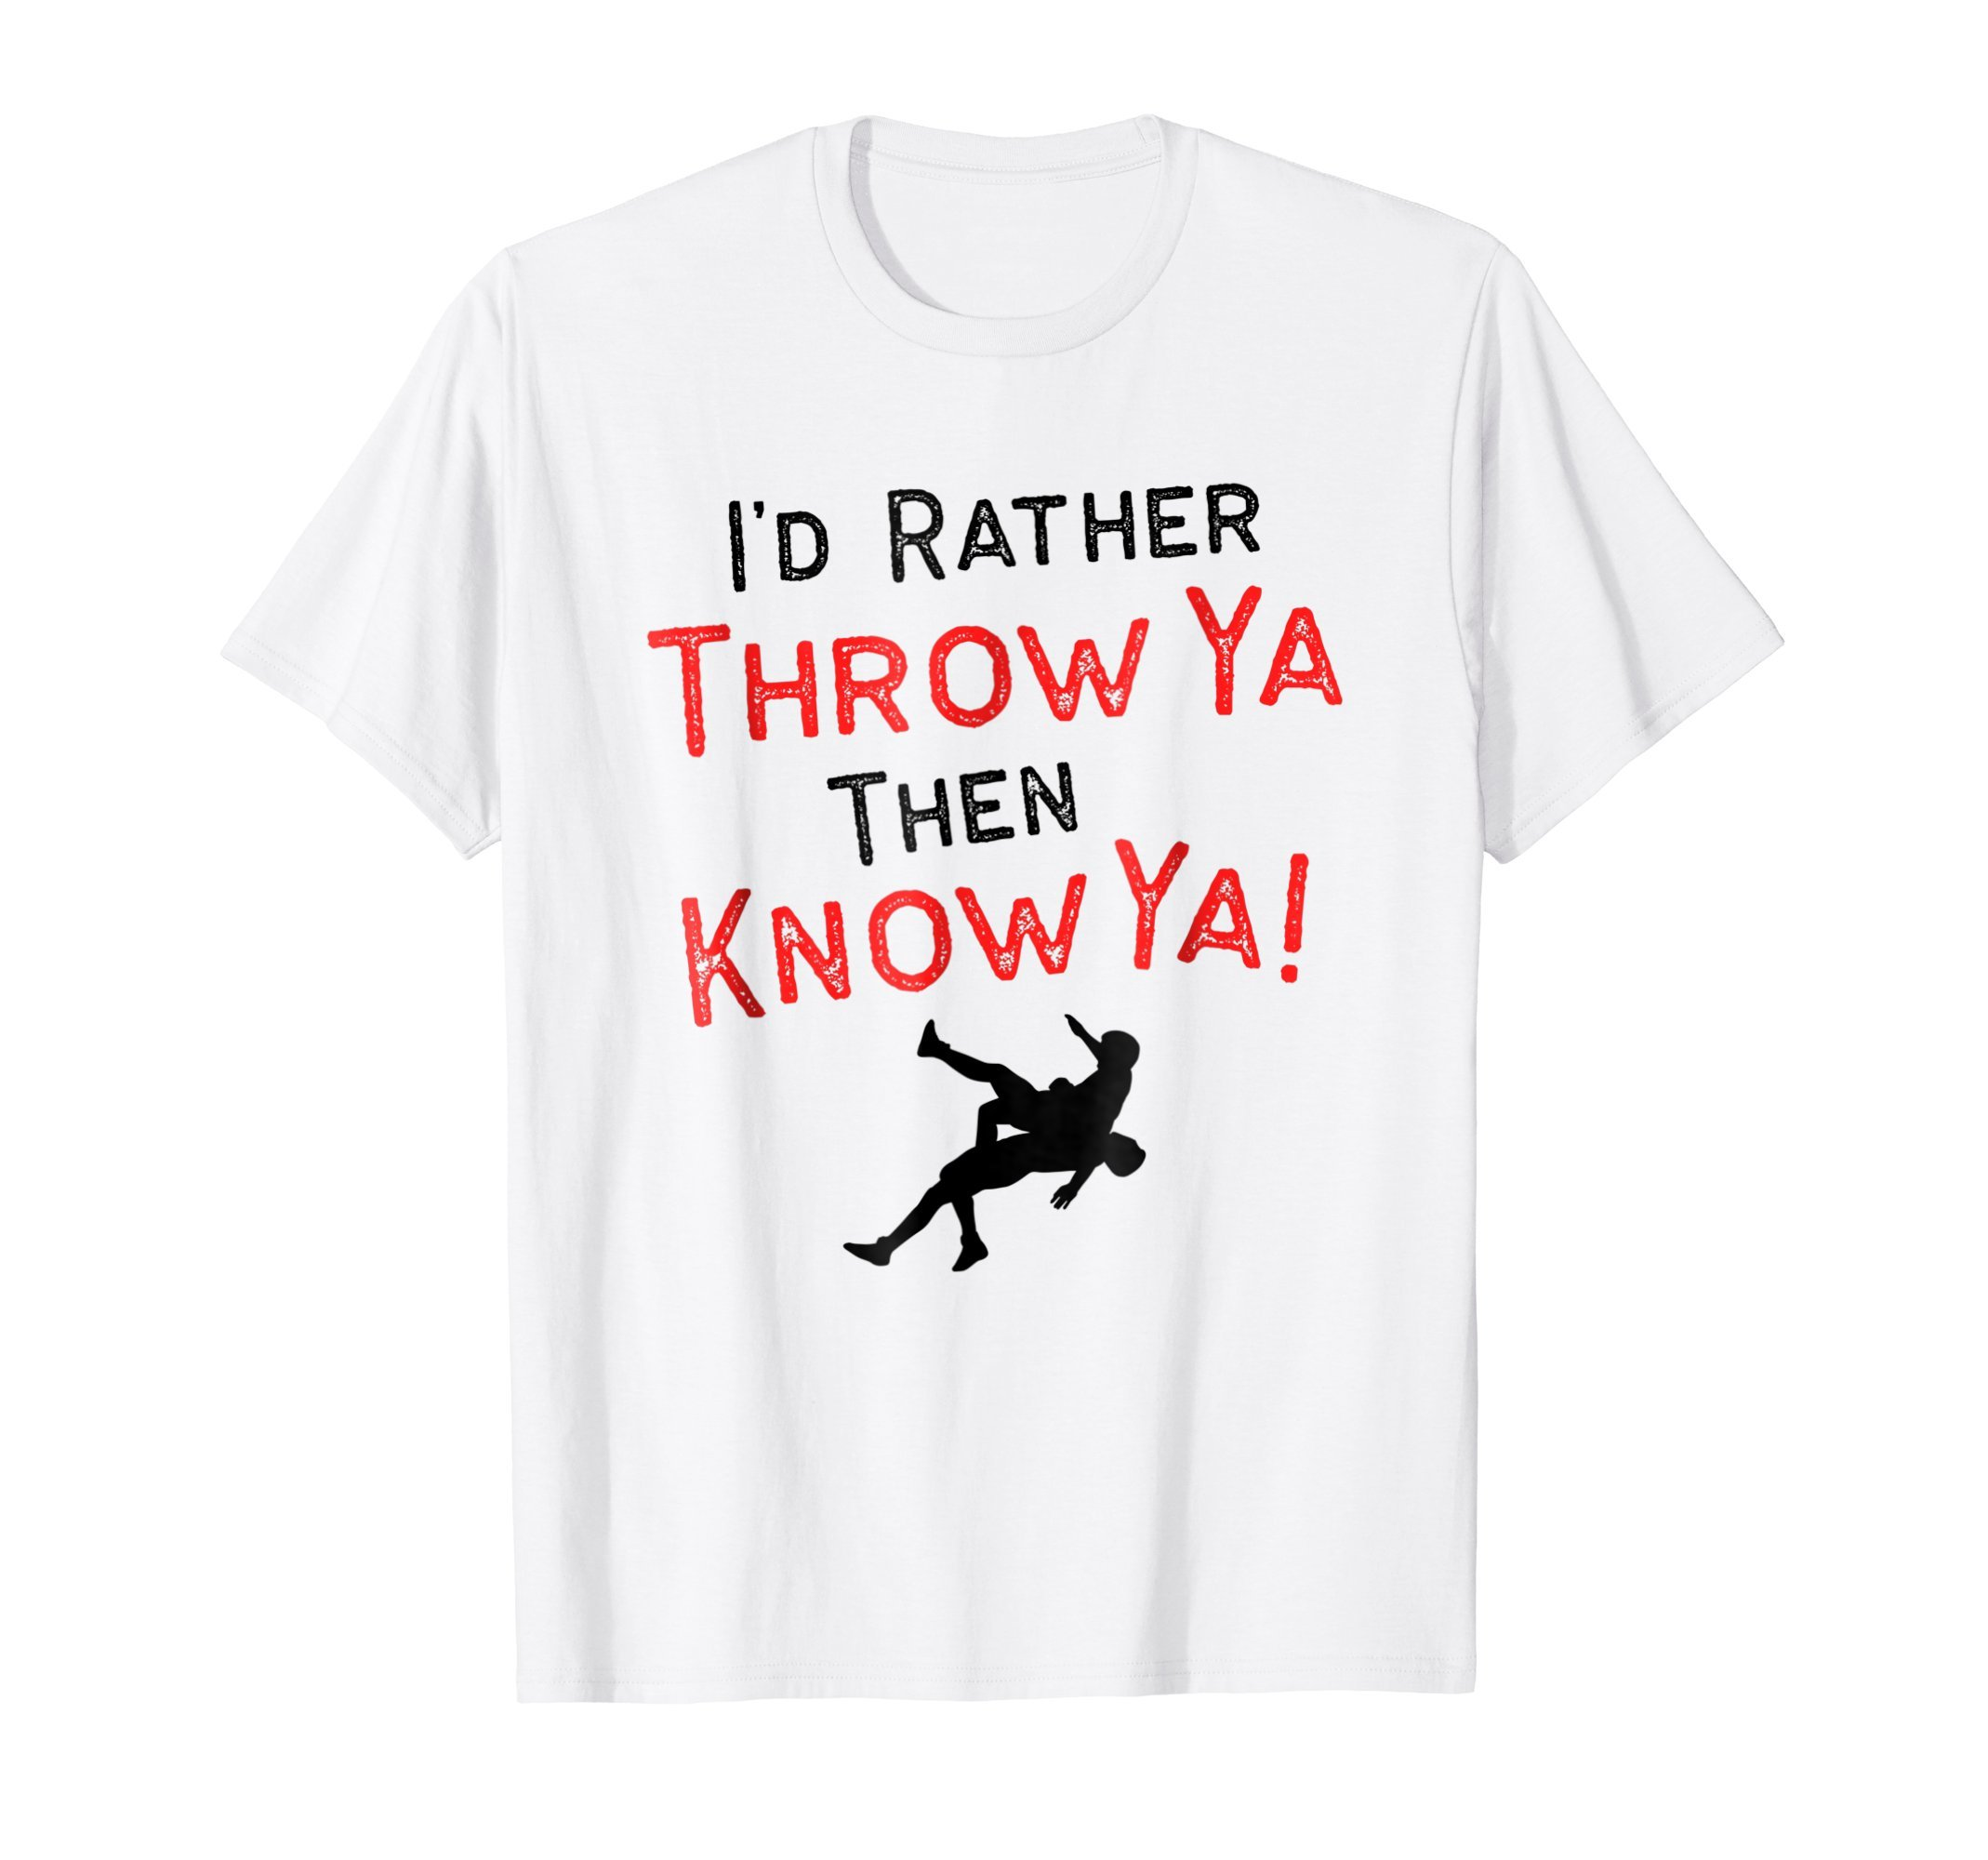 Throw You Wrestling Shirt for Wrestlers, Gift, Funny by Wrestling Shirts and Wrestling Shoes